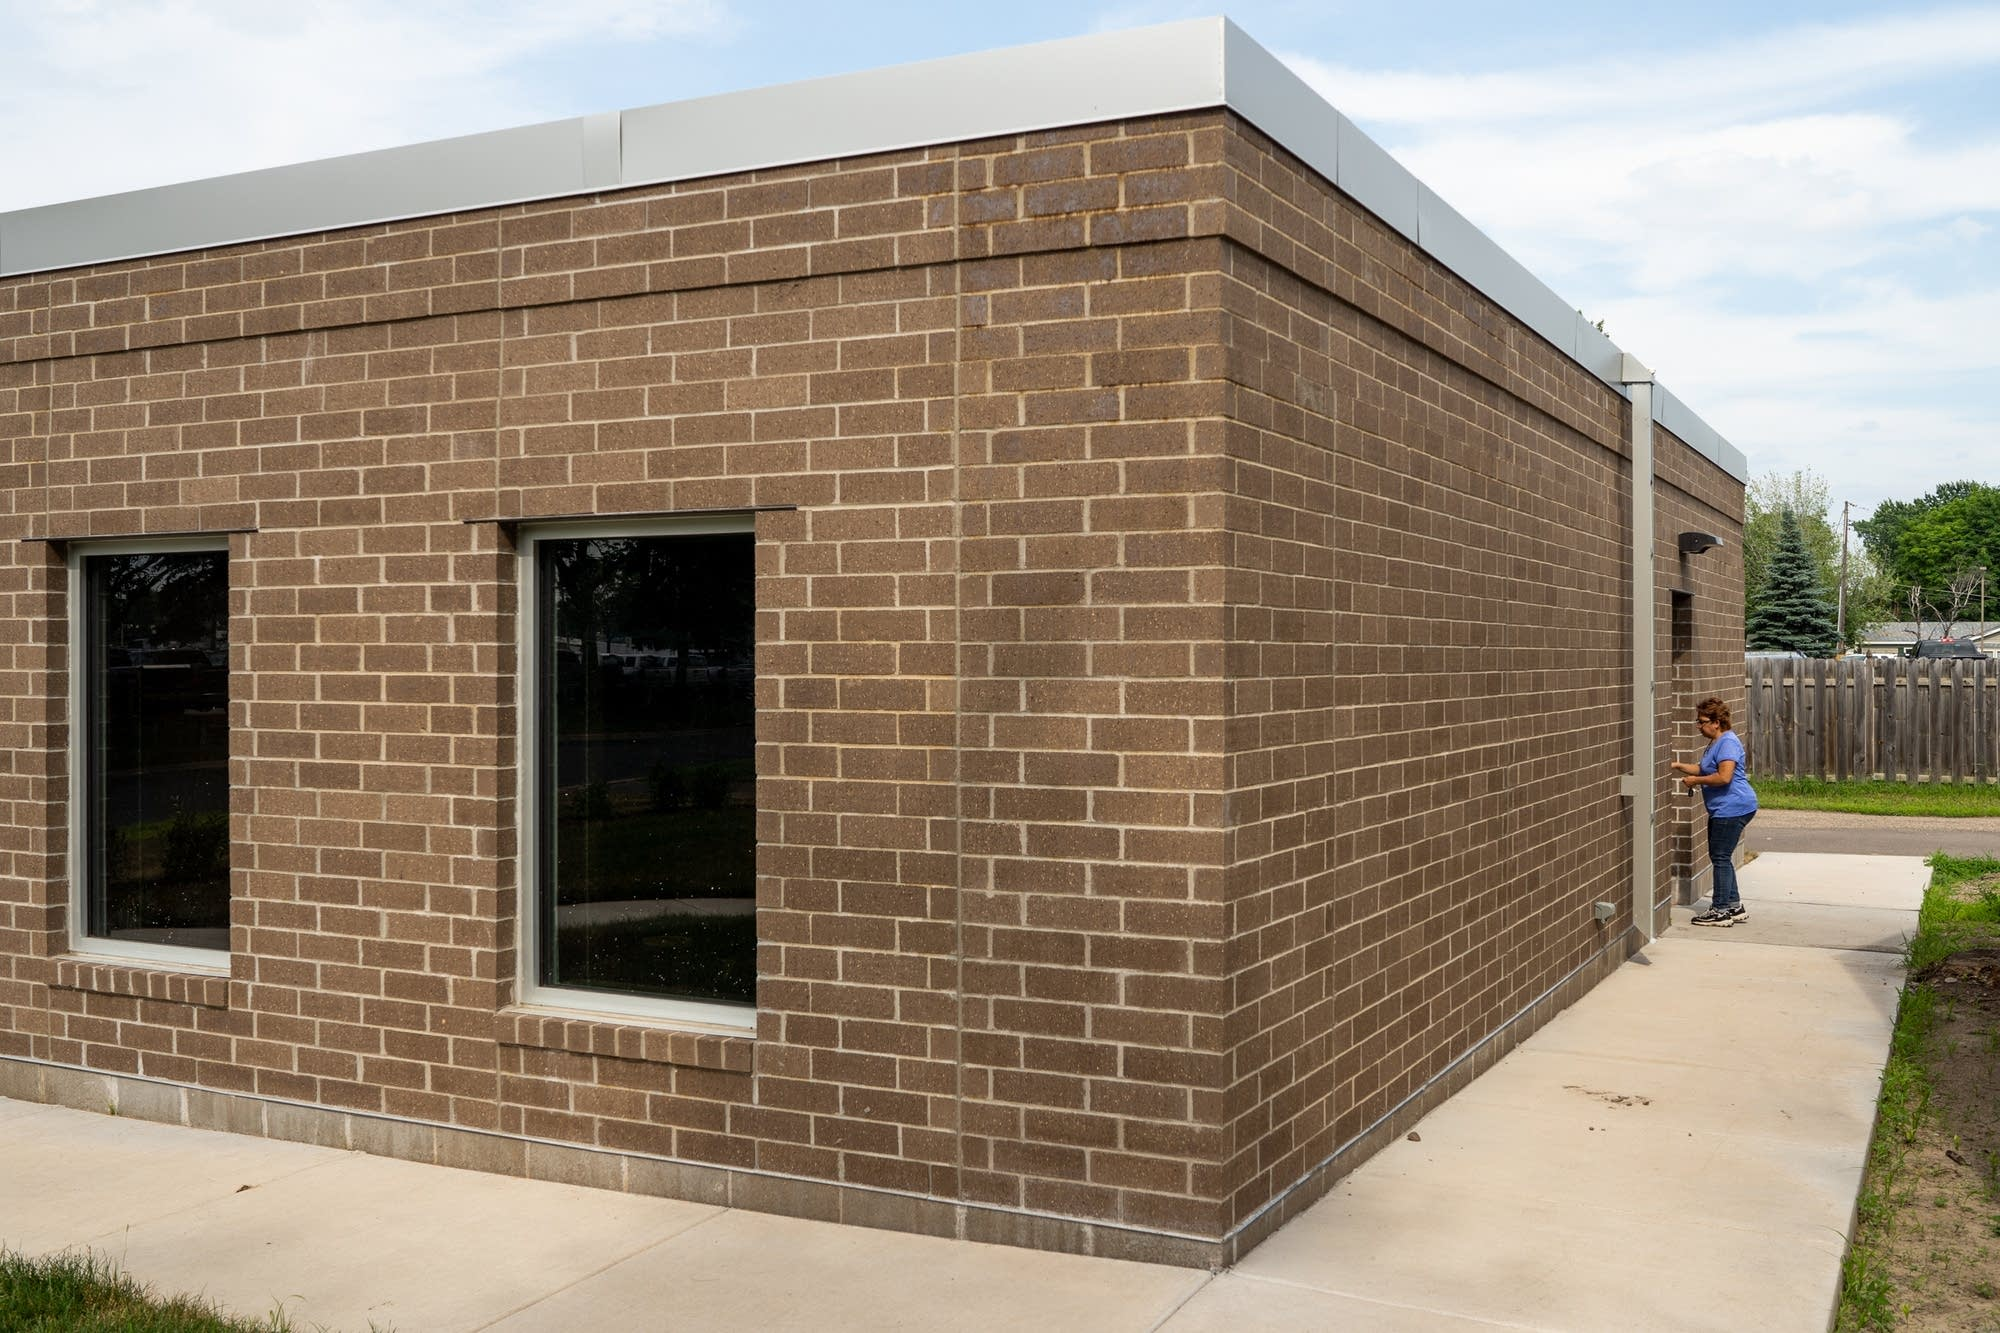 Not enough affordable housing? What about mobile homes ... on brick buildings, brick storage, brick houses, brick townhouses, brick garages, brick manufacturing, brick modular homes, brick texas homes, brick painting,